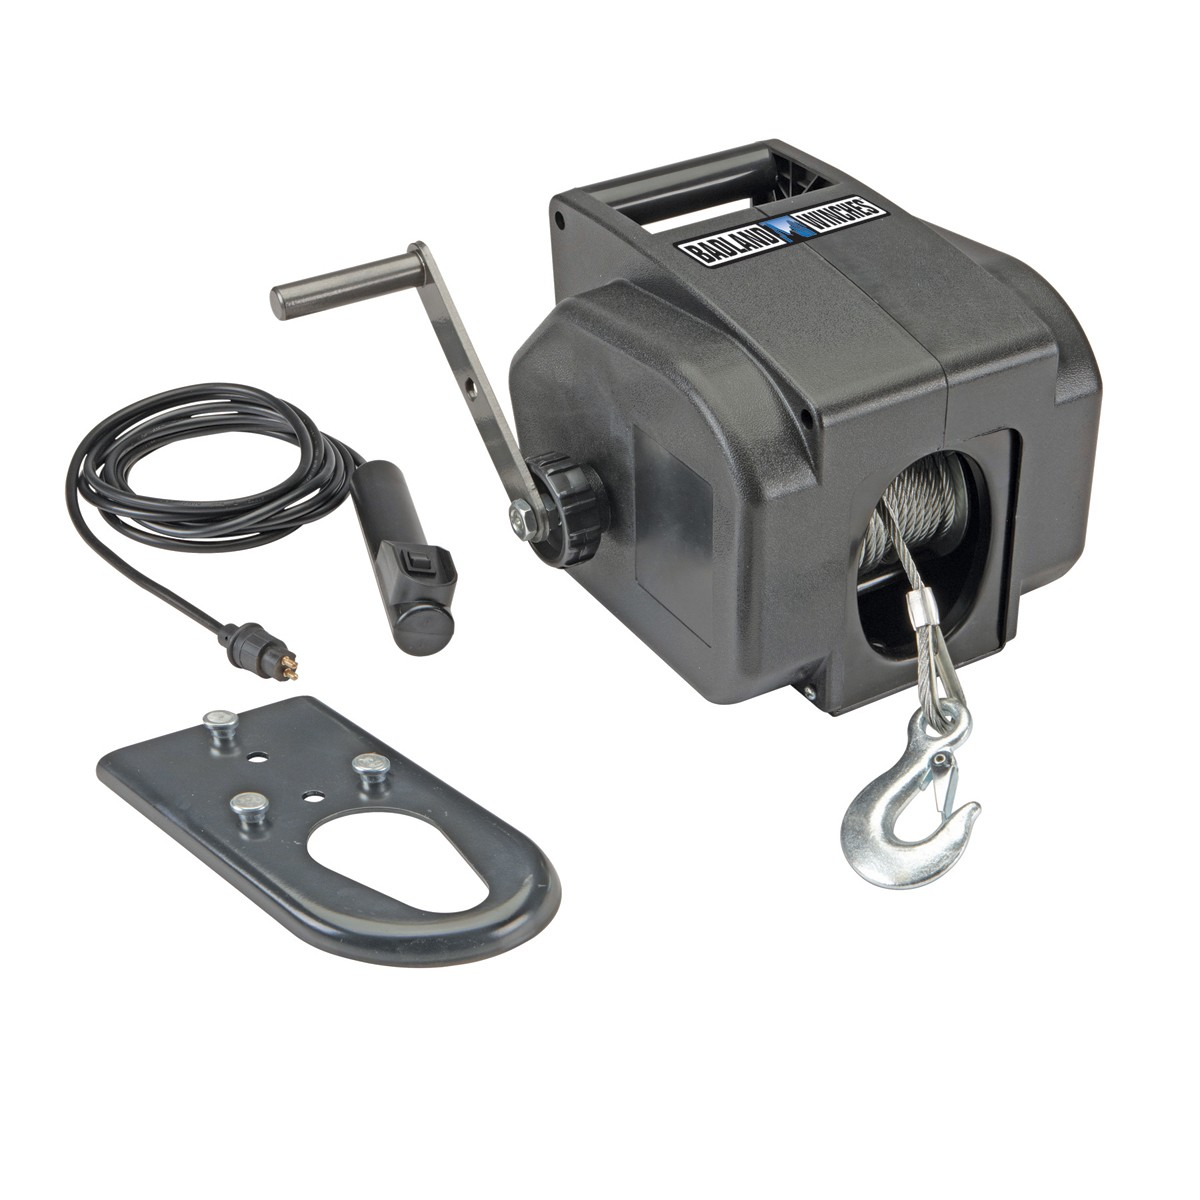 badland marine electric winch 2000 lb towing cable 30 ft aircraft badlands 2000 lb winch wiring diagram badlands 2000 lb winch wiring [ 1200 x 1200 Pixel ]